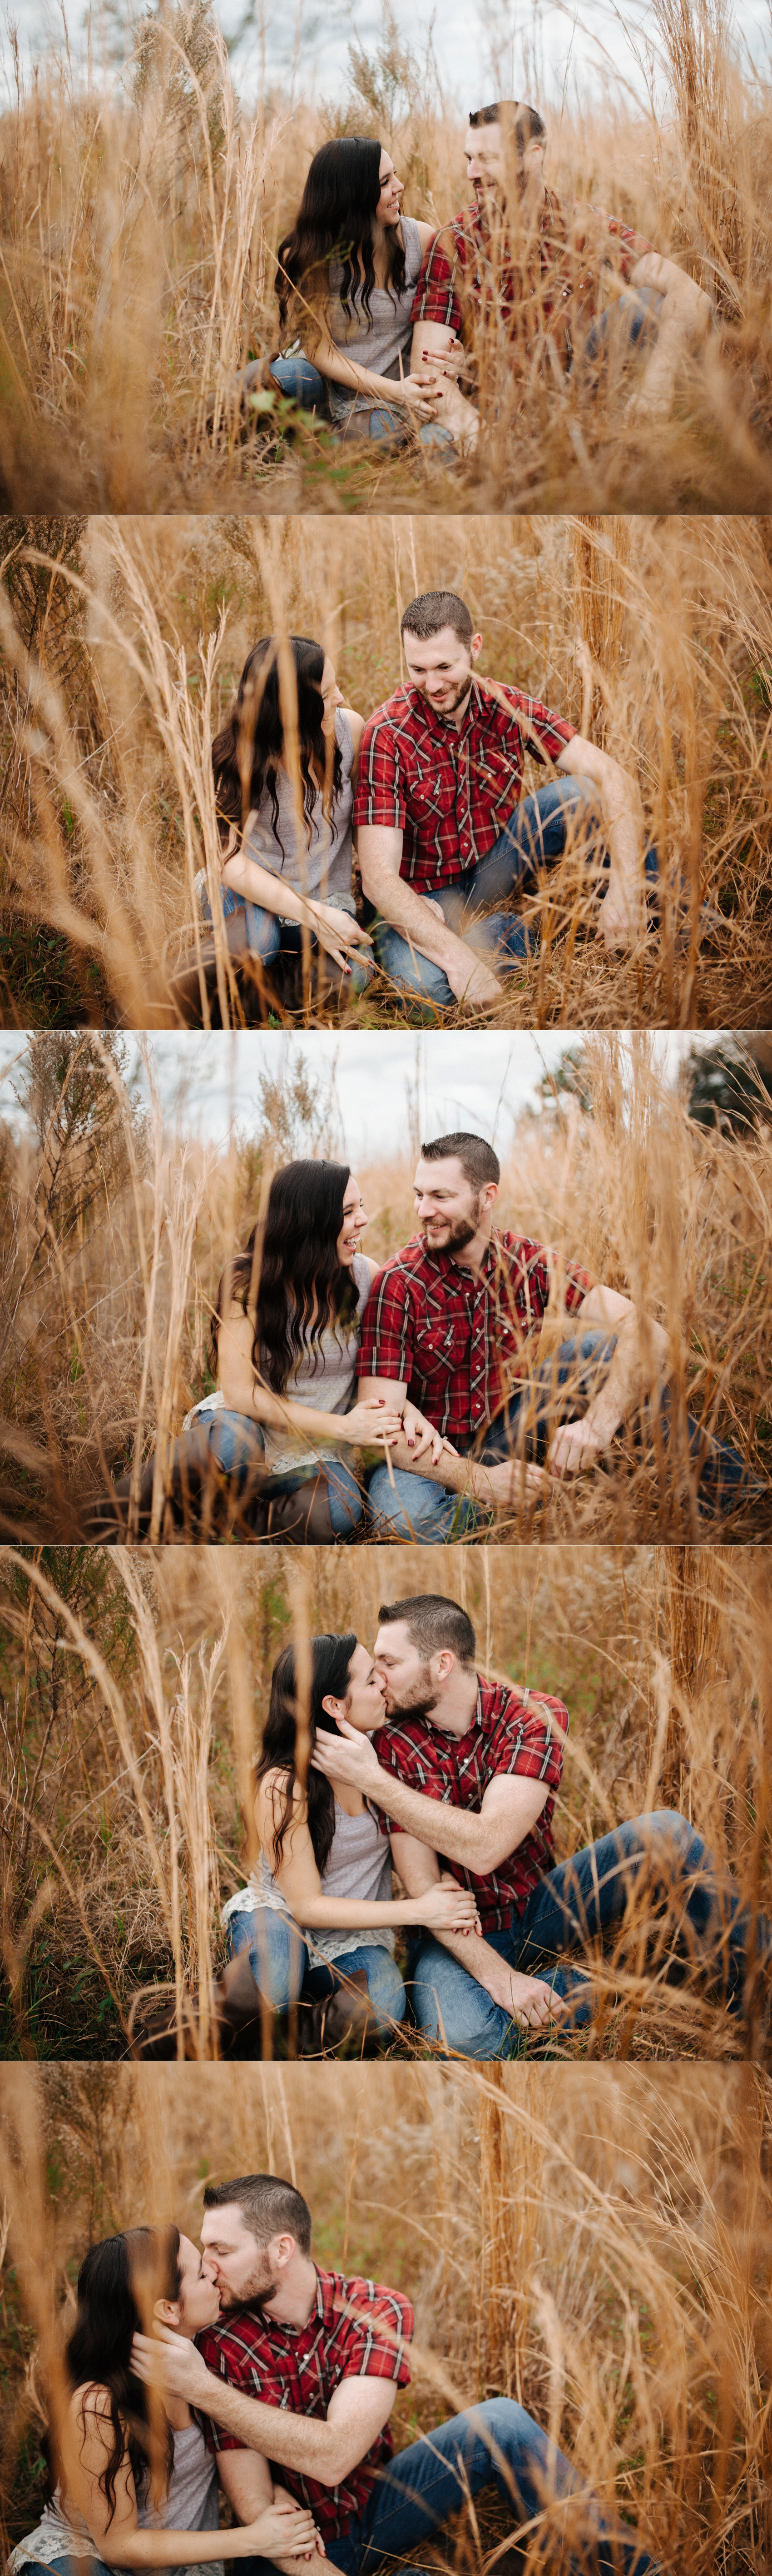 tampa outdoor hiking cave engagement session-16